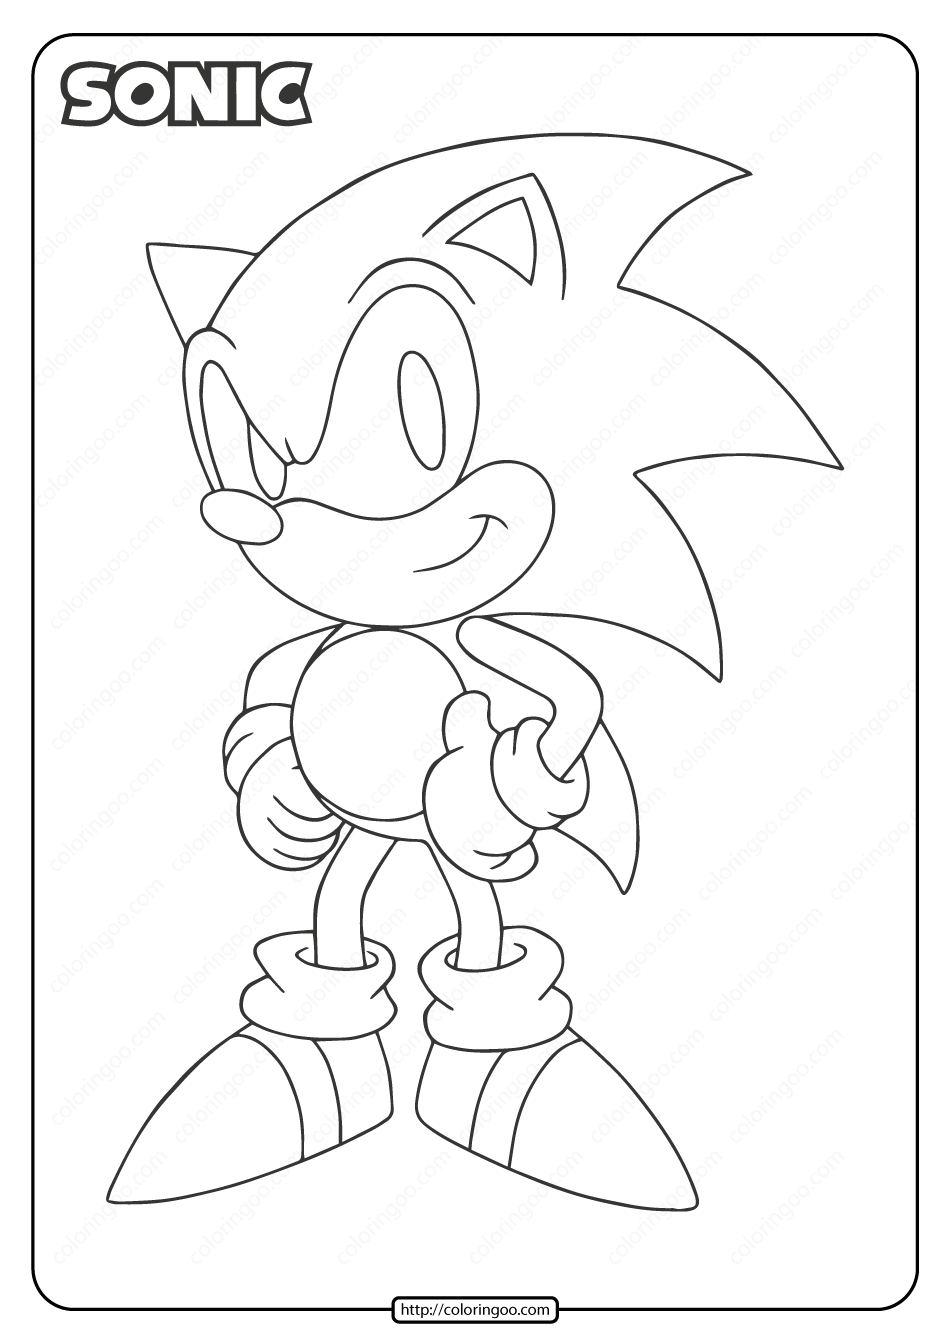 Free Printable Sonic Pdf Coloring Page In 2021 Coloring Pages Sonic Birthday Coloring Pages